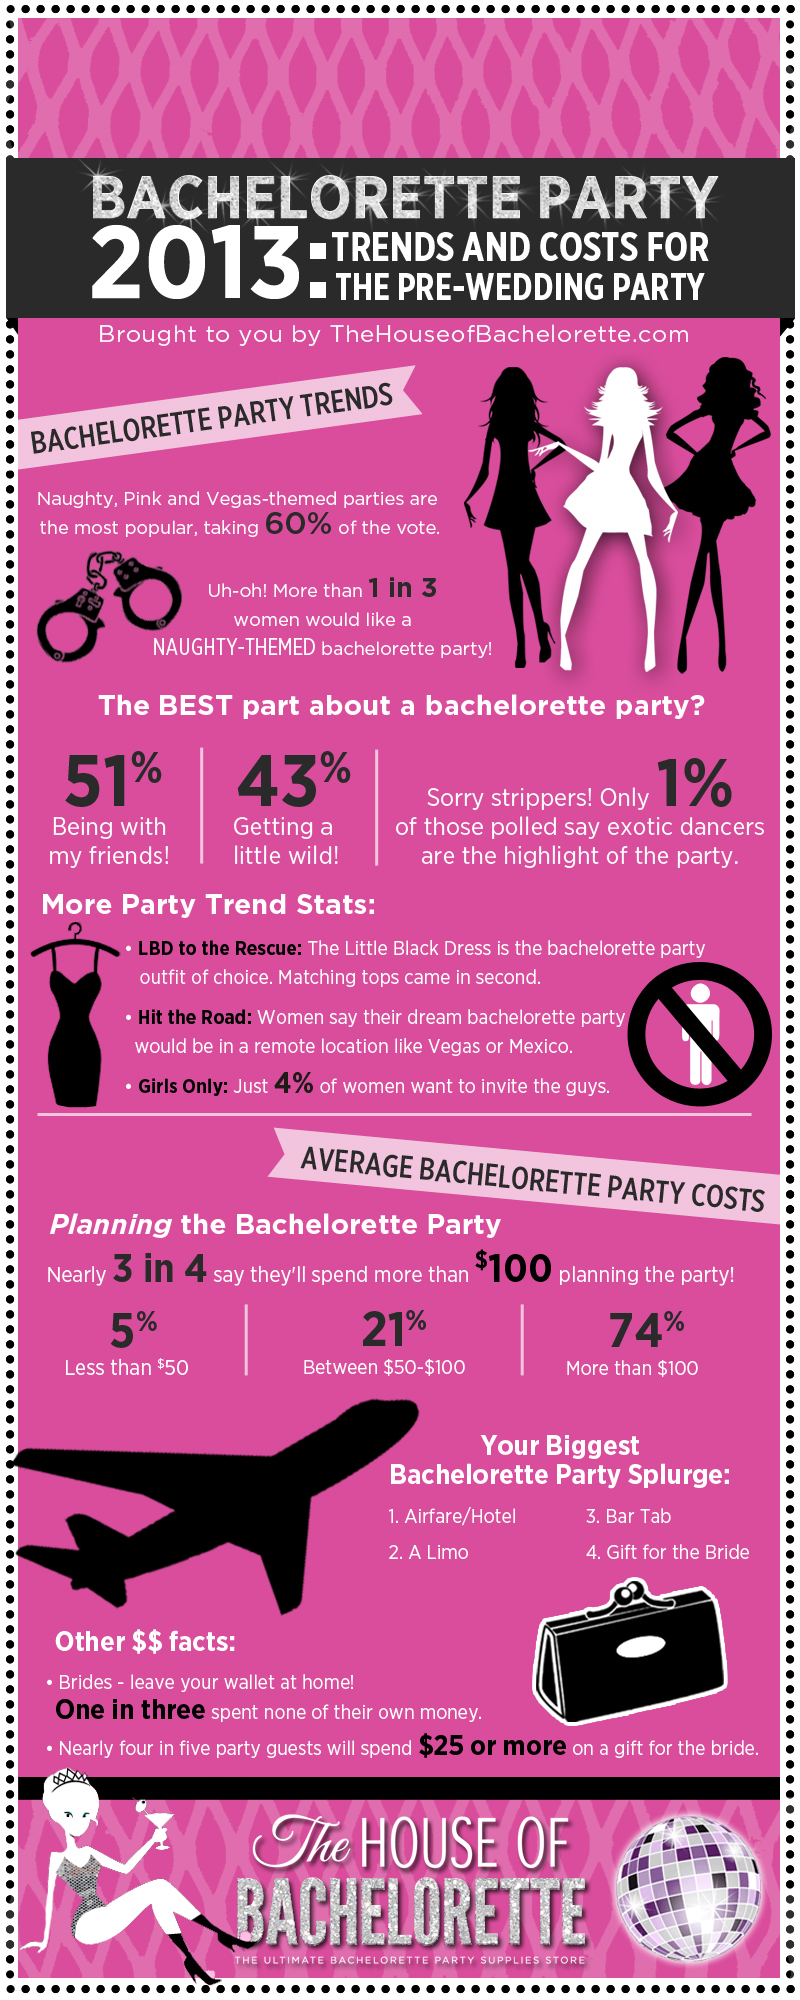 17 Best Images About Bachelorette Party On Pinterest